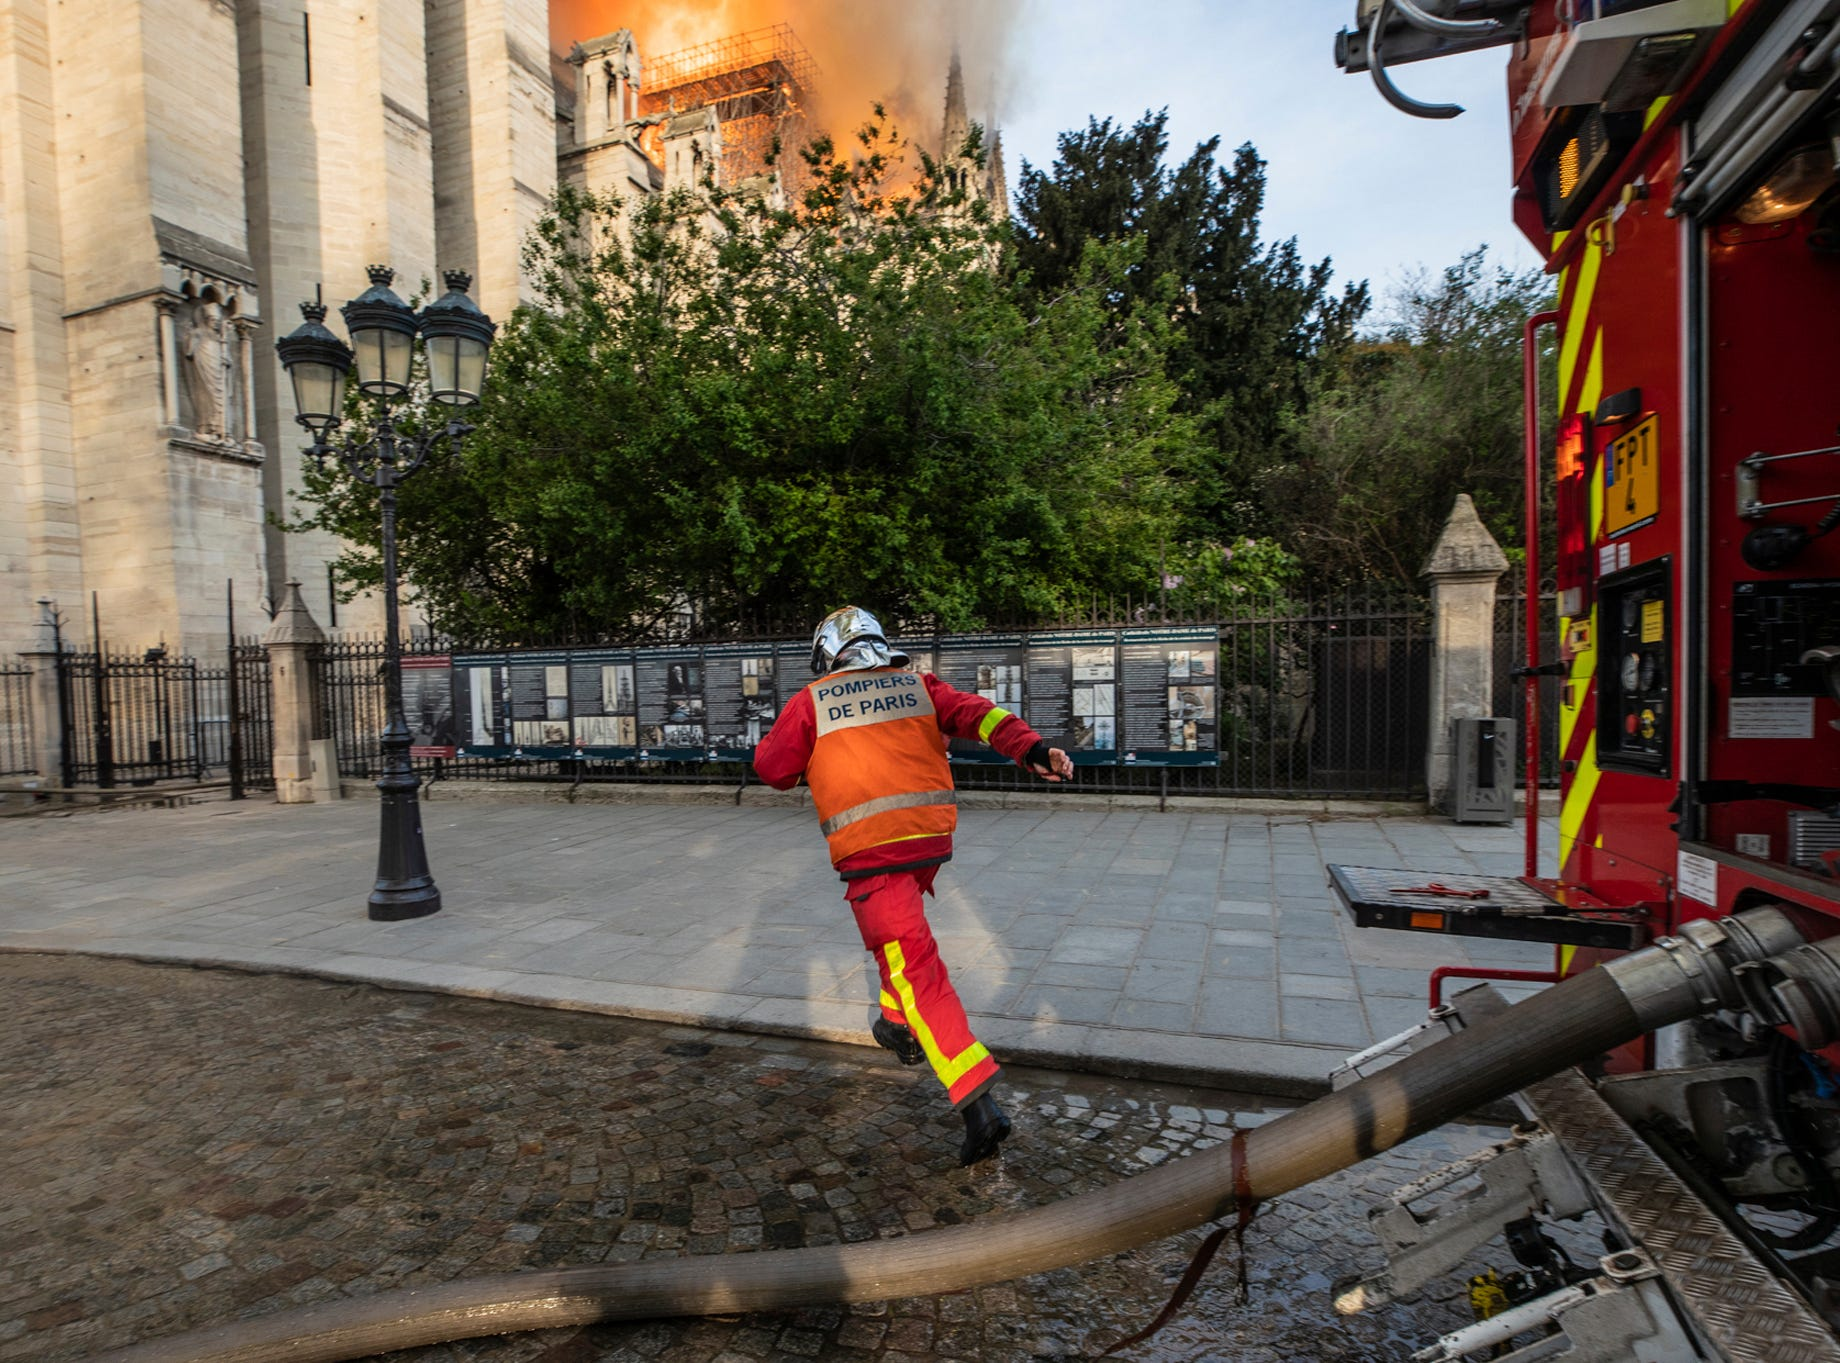 This photo provided Tuesday April 16, 2019 by the Paris Fire Brigade shows a fire fighter rushing at the burning Notre Dame cathedral, Monday April 15, 2019. Experts assessed the blackened shell of Paris' iconic Notre Dame Tuesday morning to establish next steps to save what remains after a devastating fire destroyed much of the cathedral that had survived almost 900 years of history. (Benoit Moser, BSPP via AP)